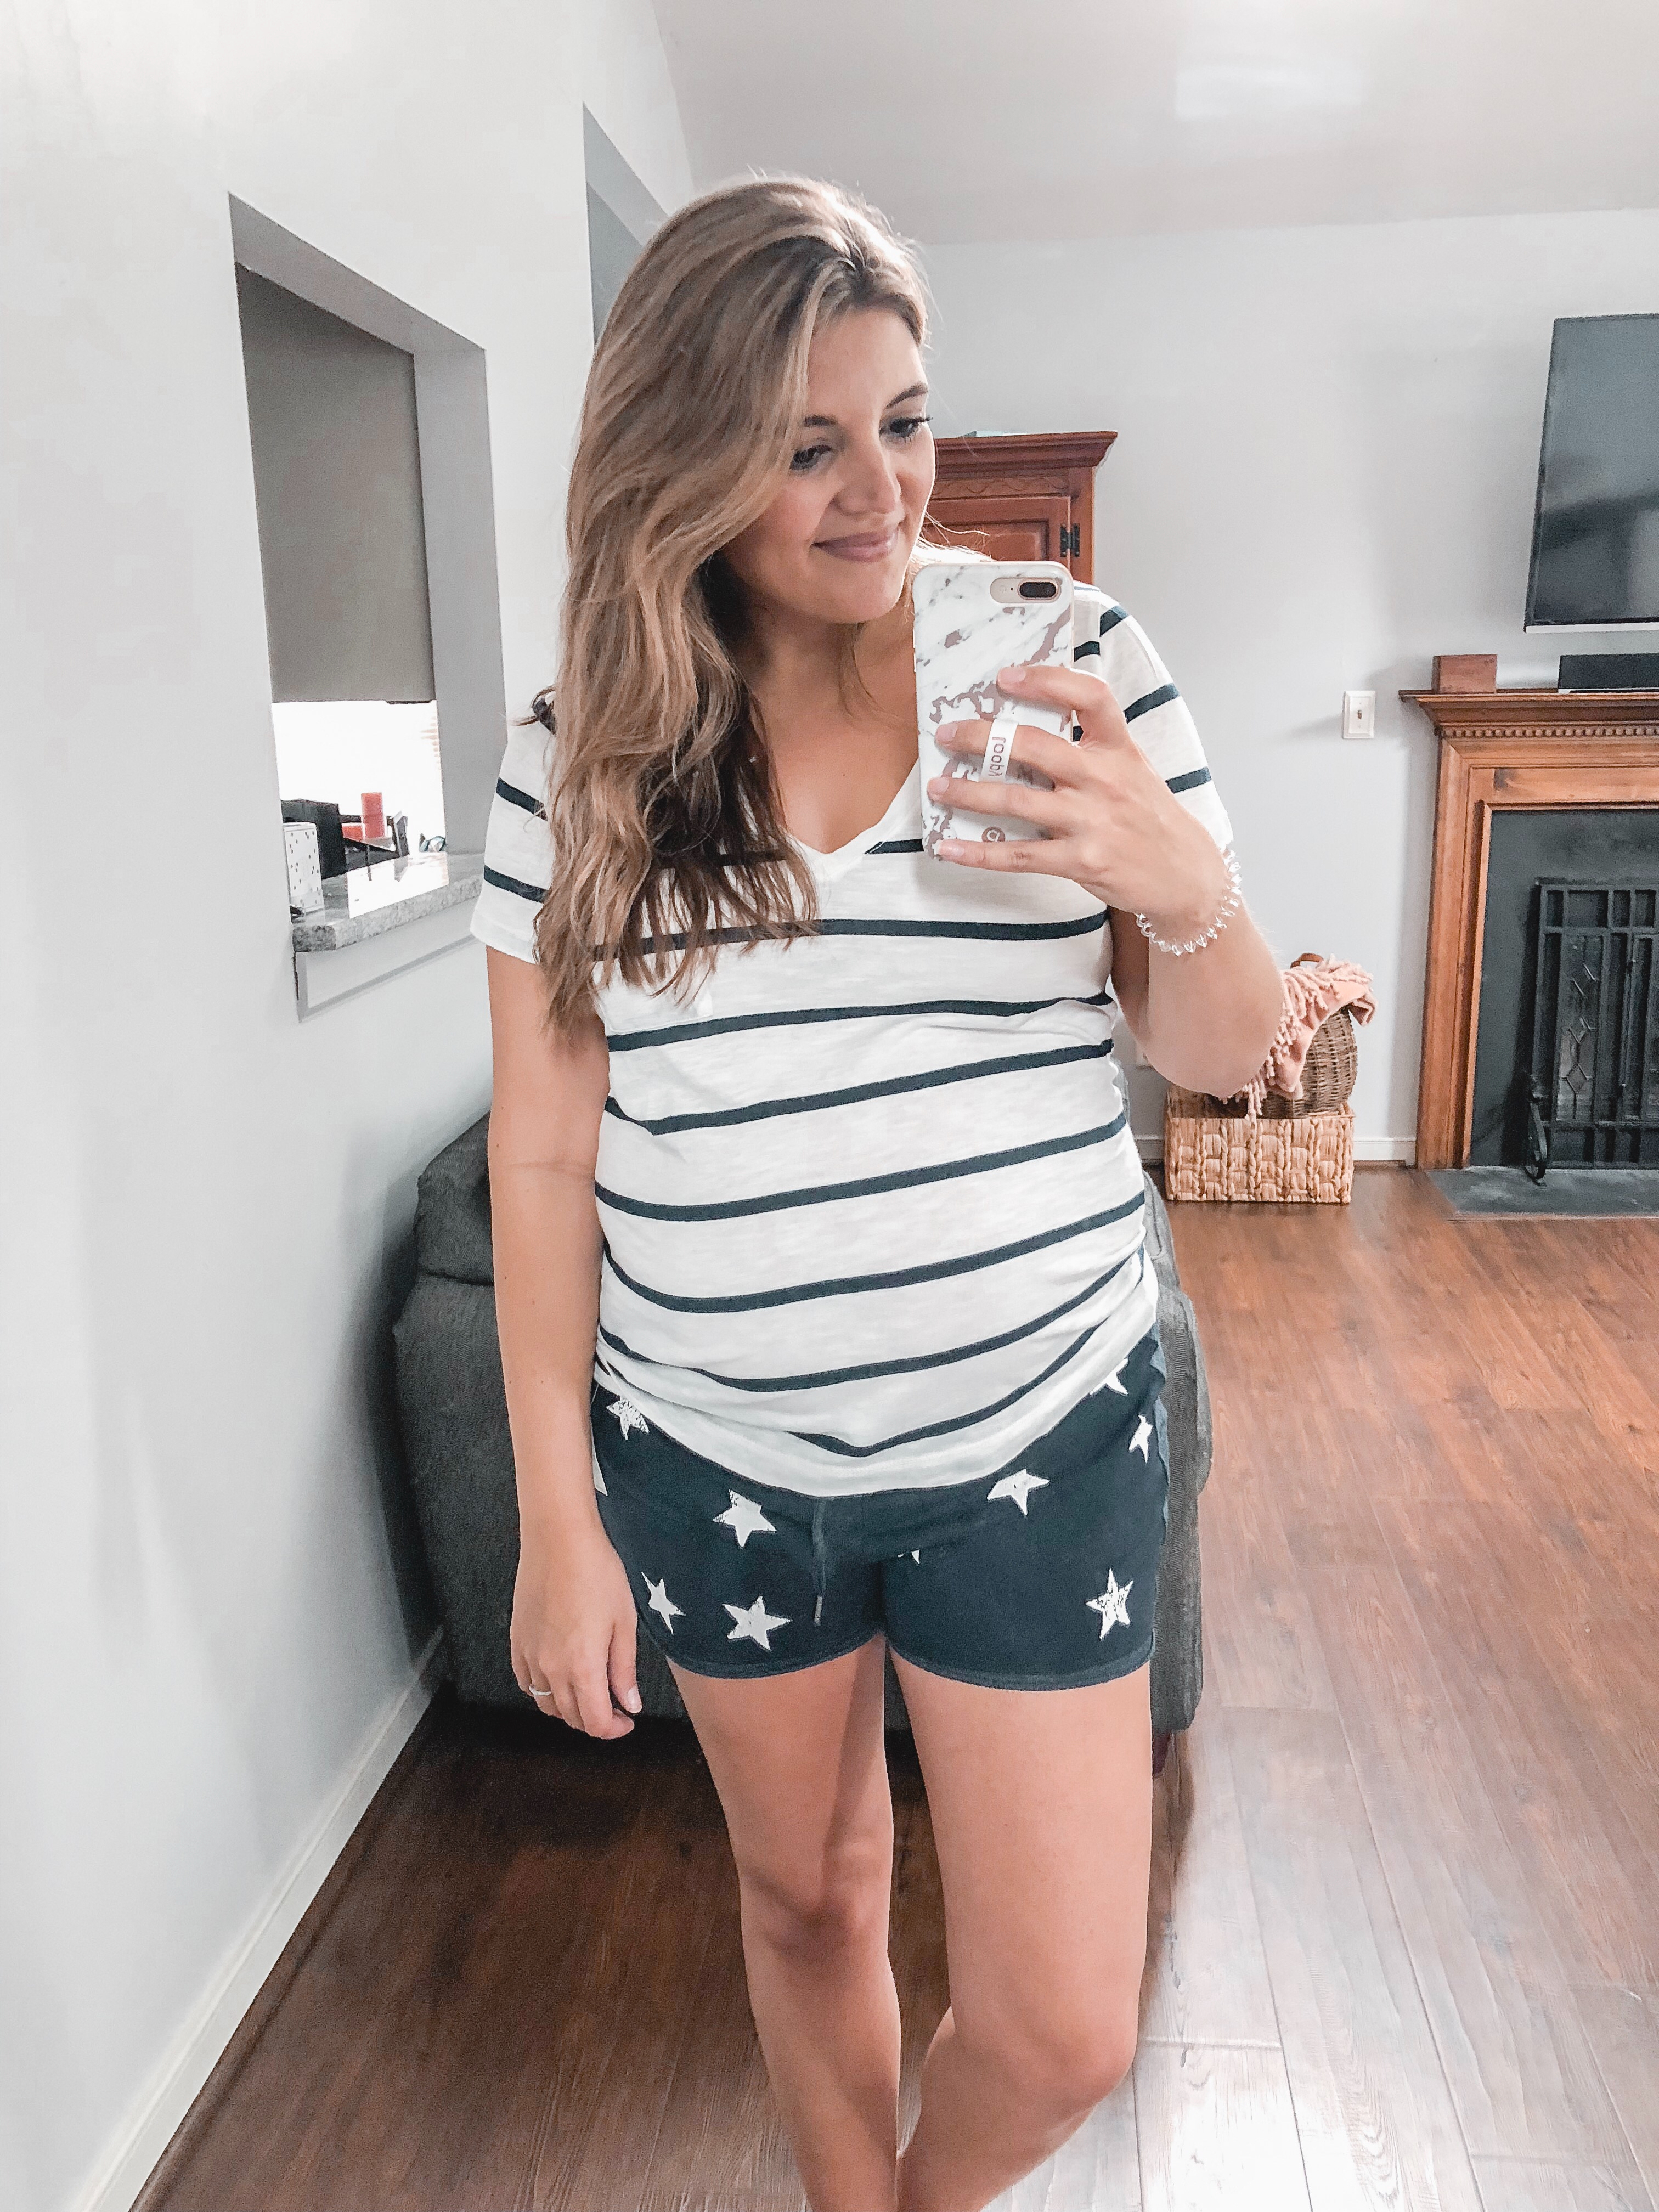 trunk club maternity + non maternity pieces reviewed | Trunk club review July 2018 bylaurenm.com